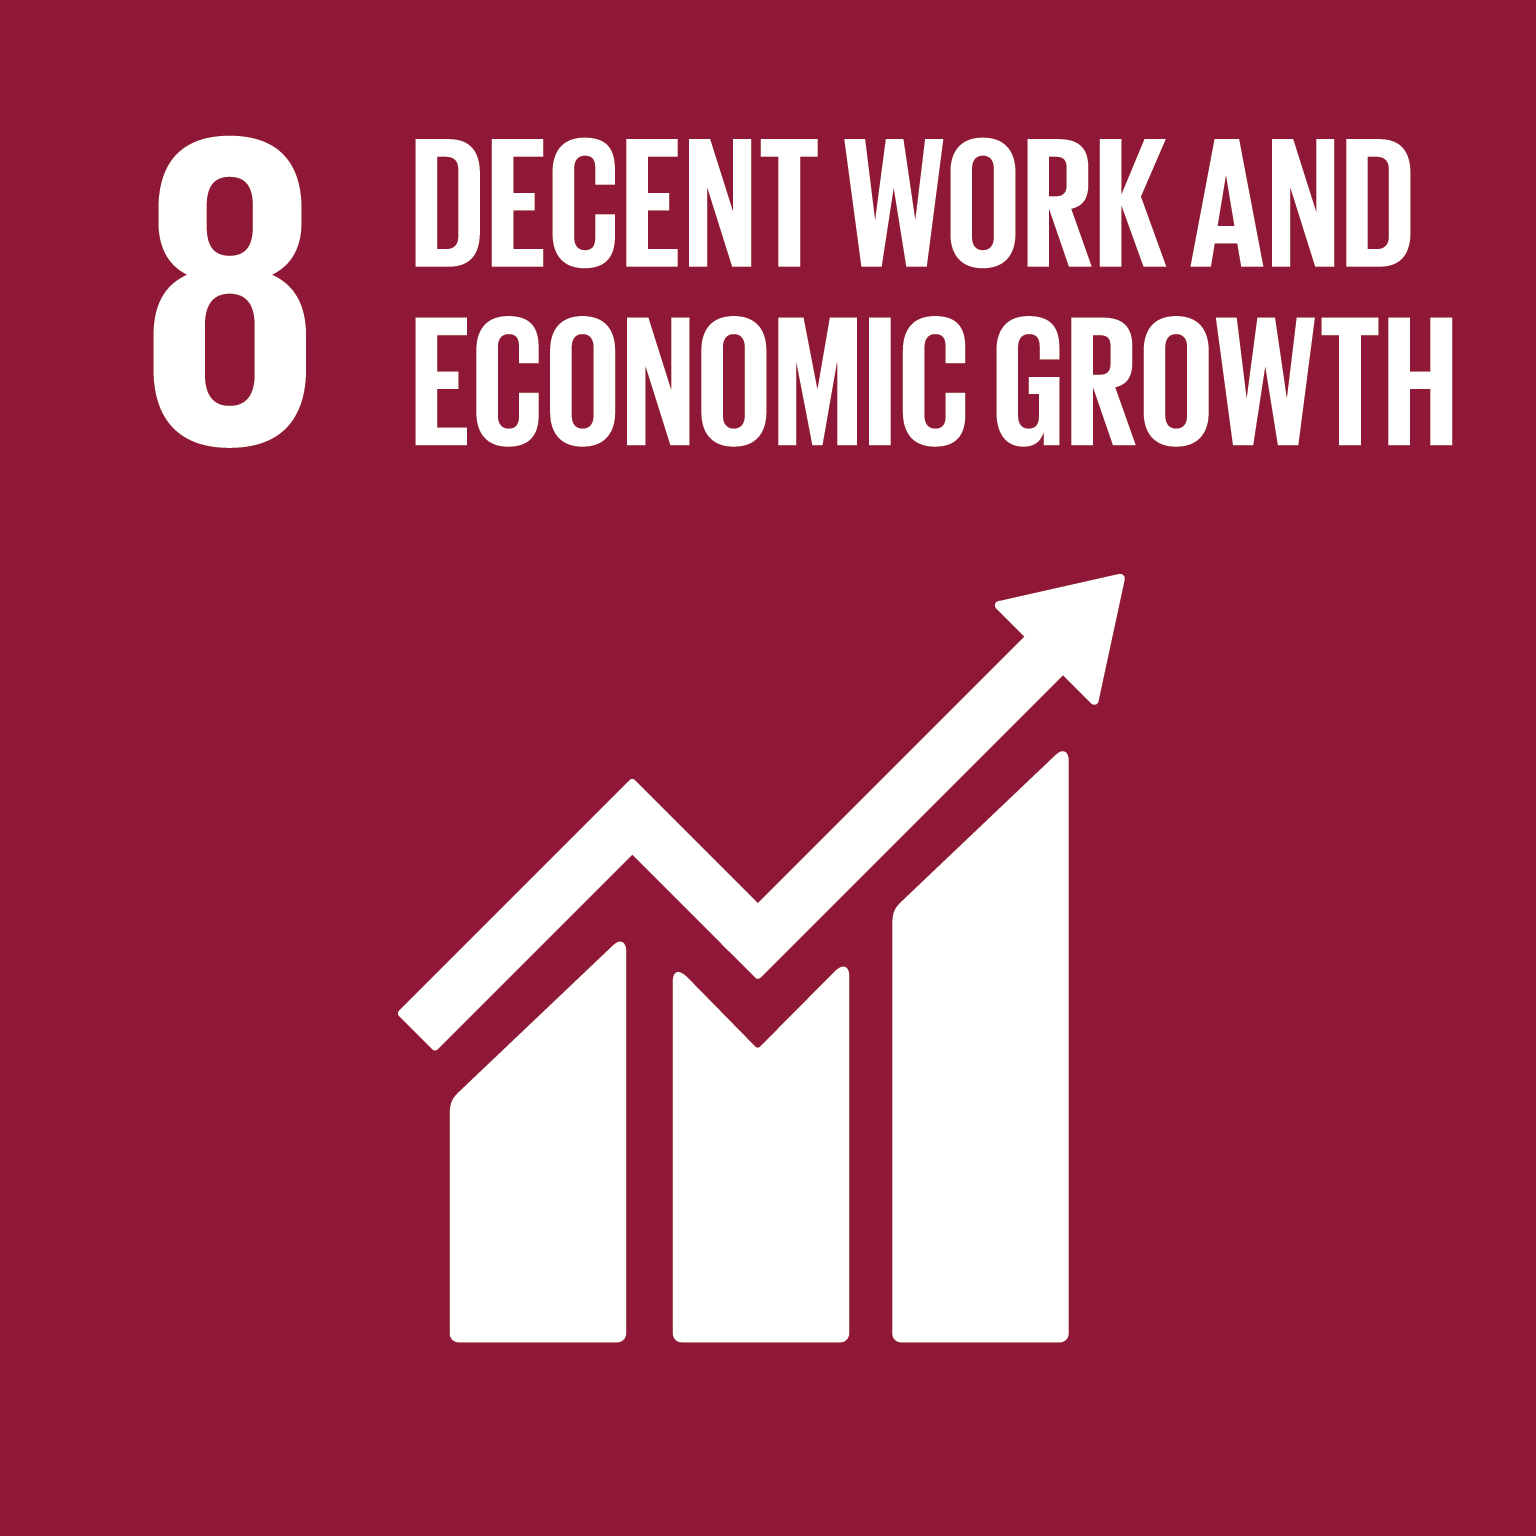 08 Decent Work and Economic Growth SDG